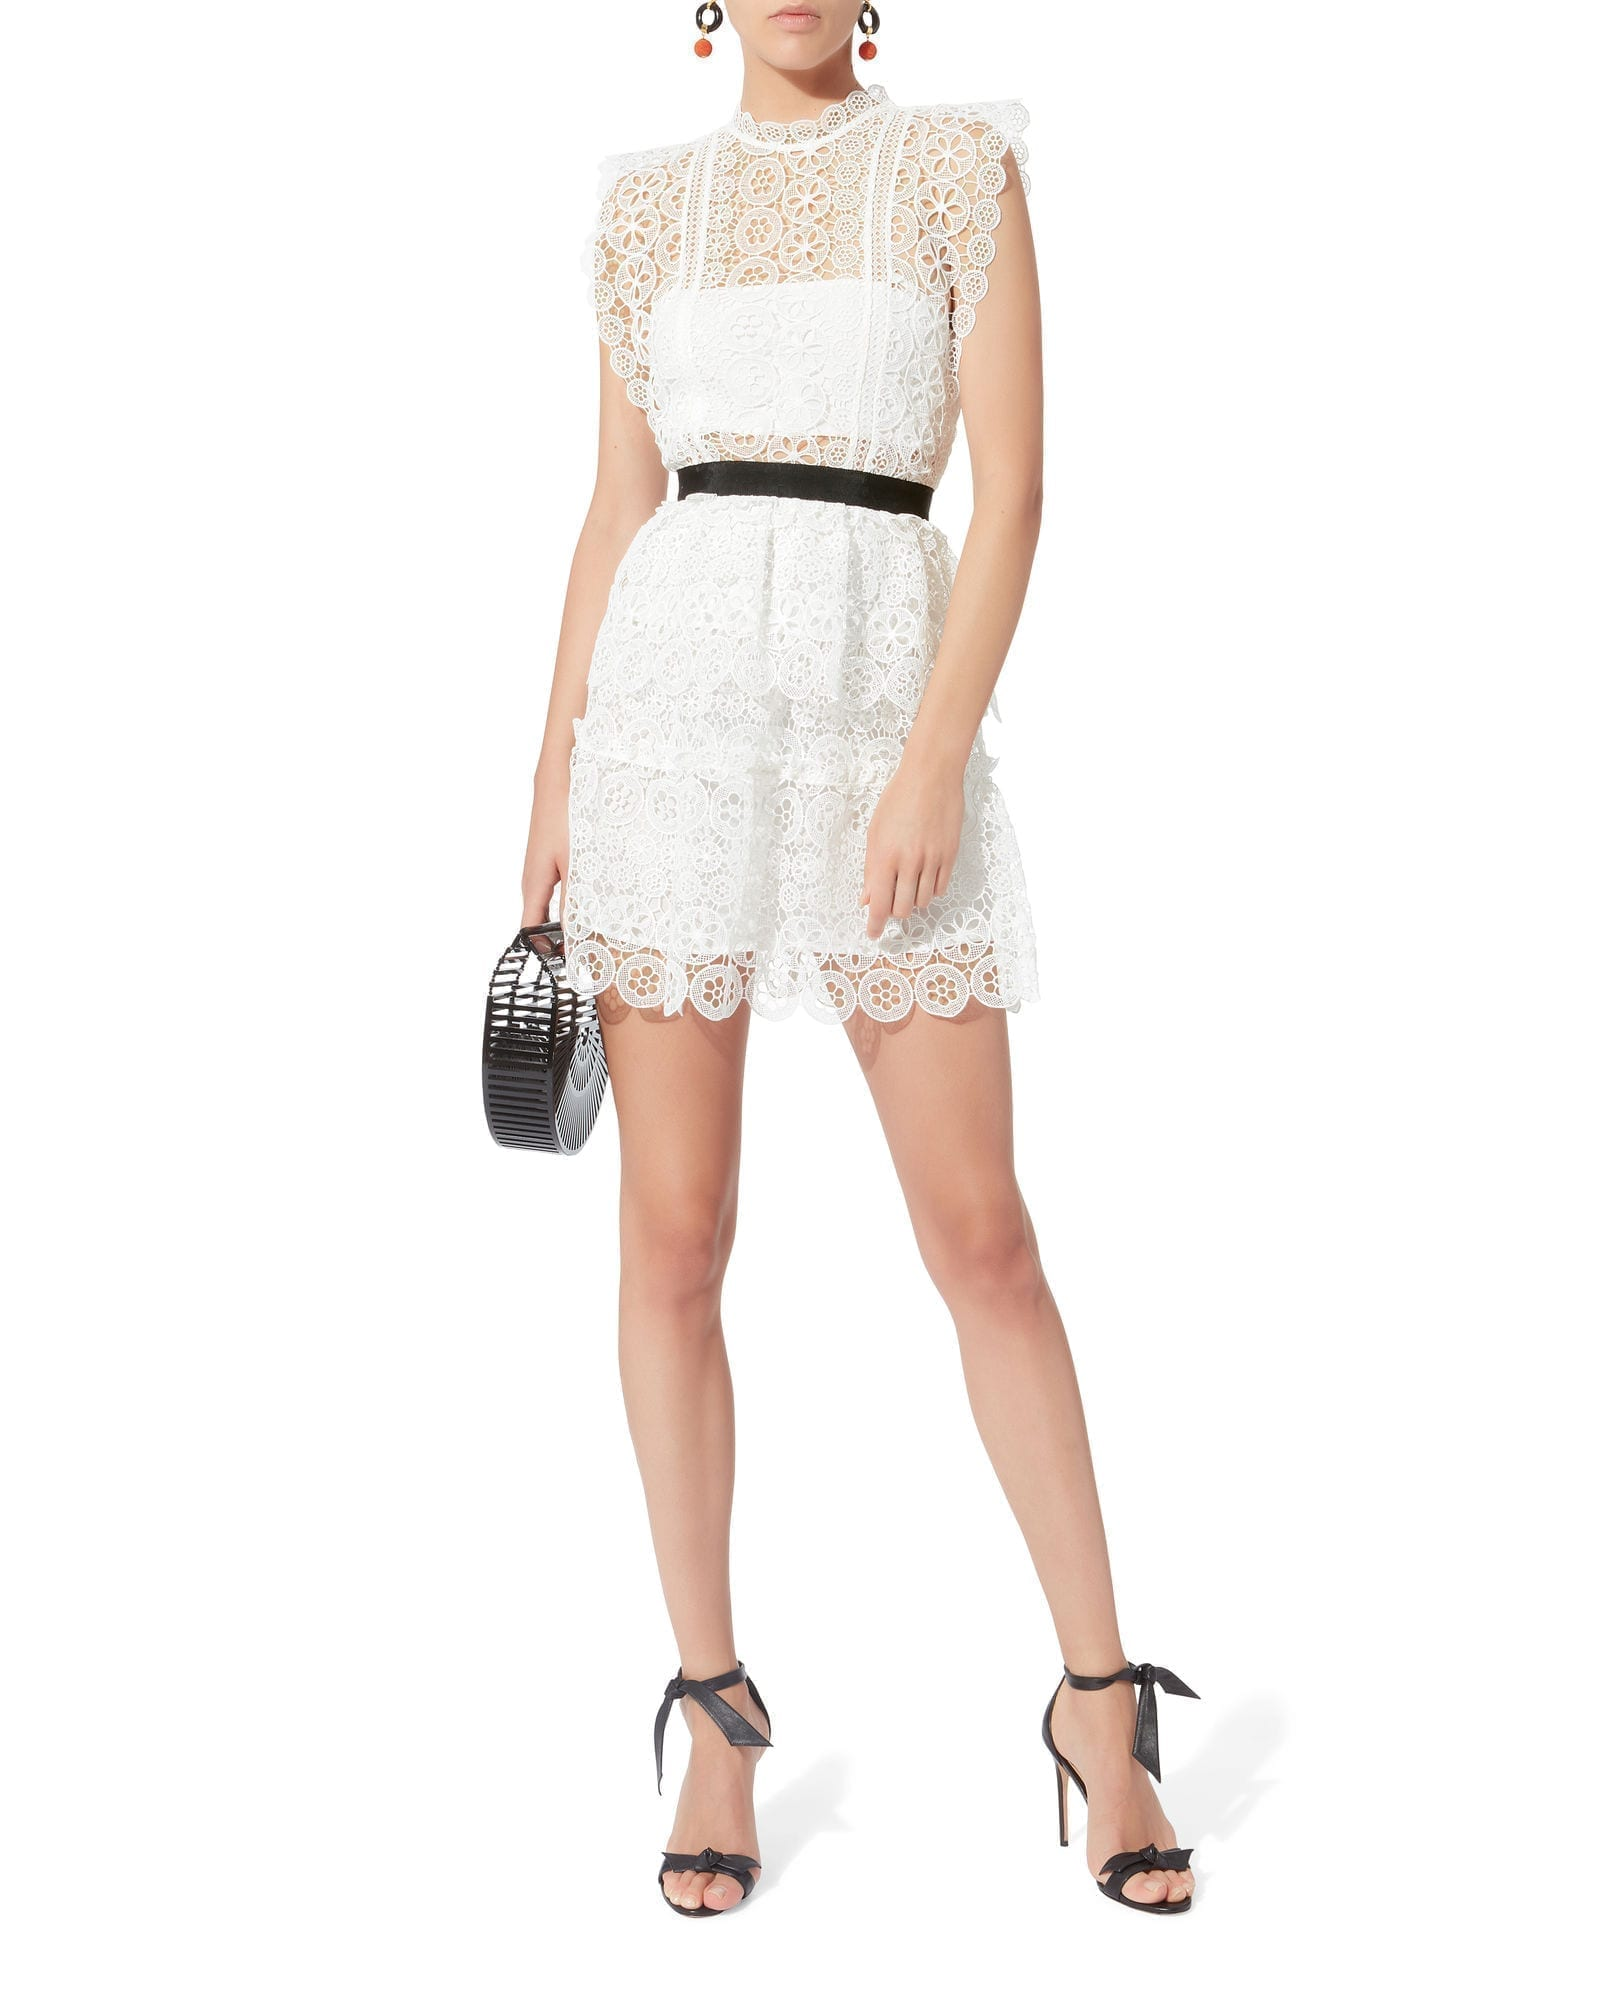 SELF-PORTRAIT Circle Floral Lace Mini White Dress